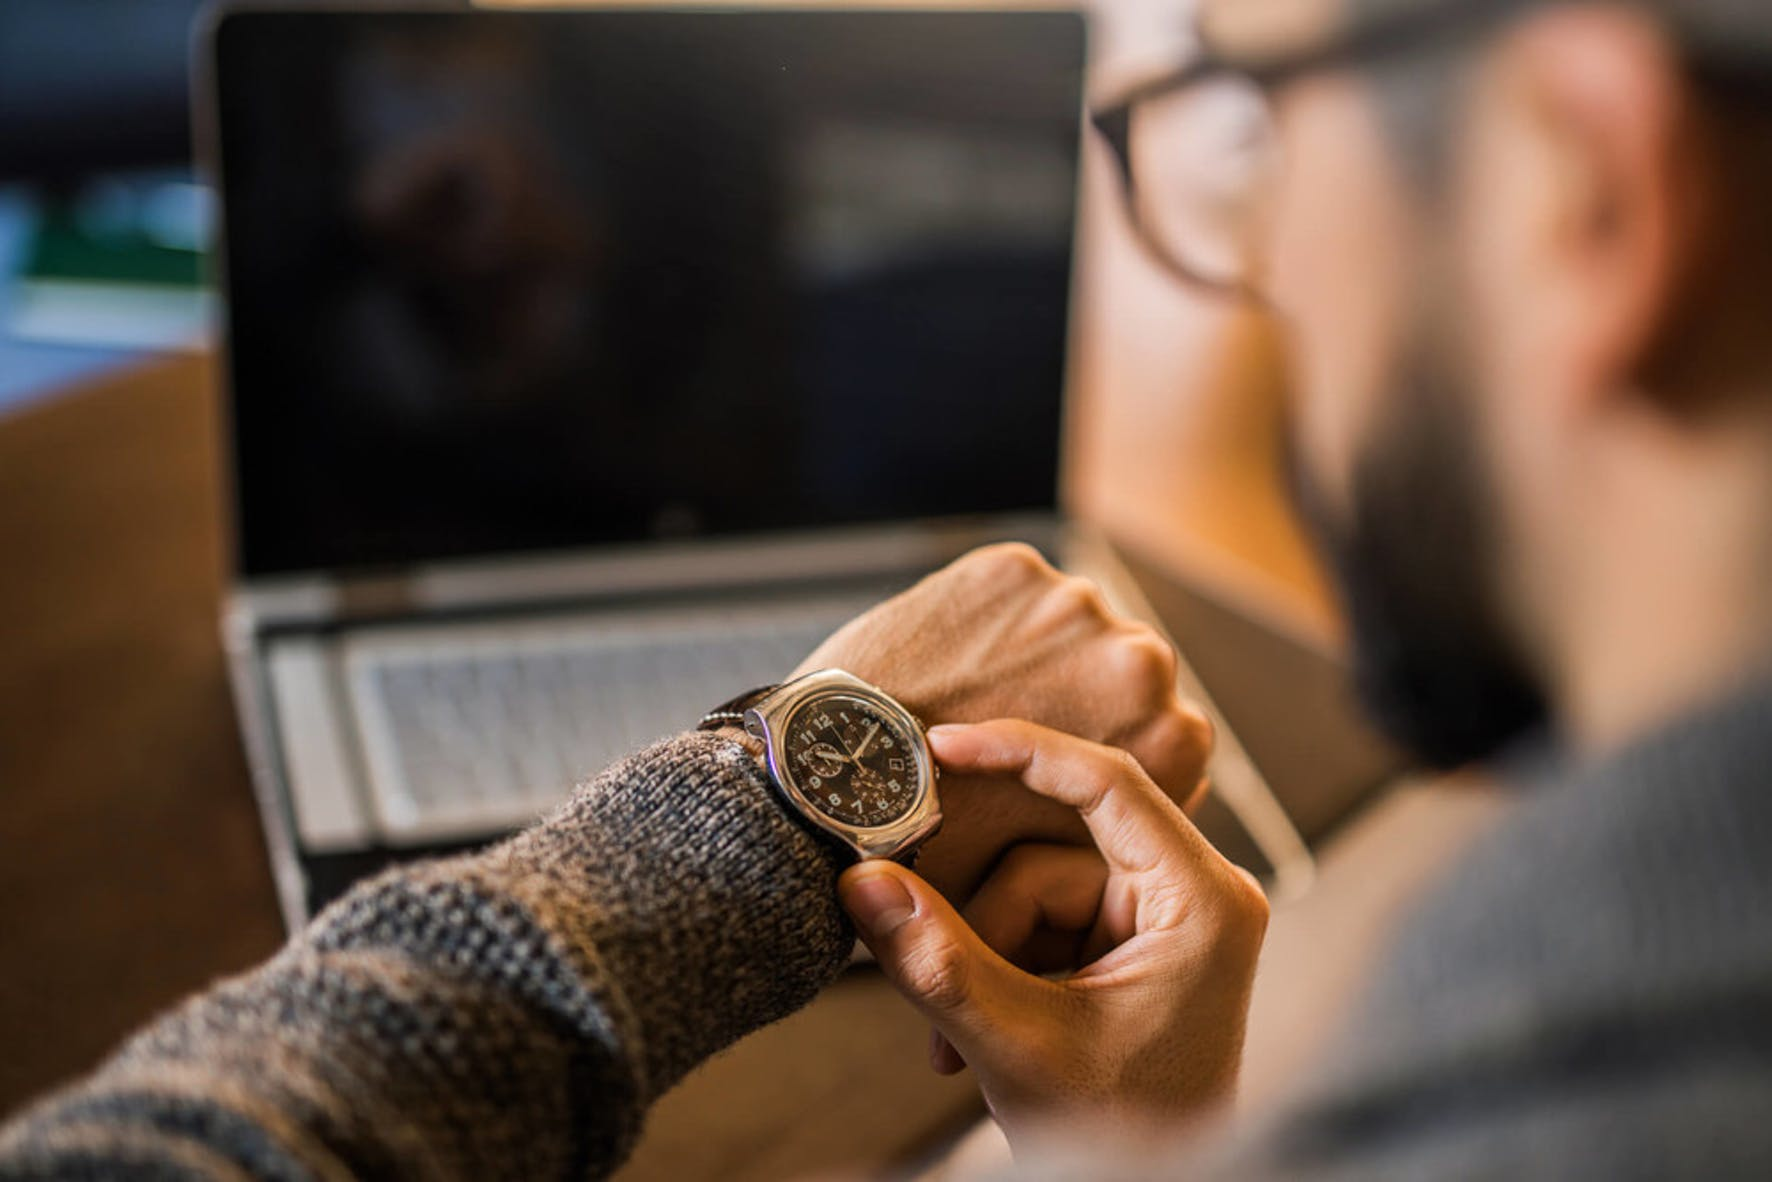 Man is looking at his watch to assess how much time he has left